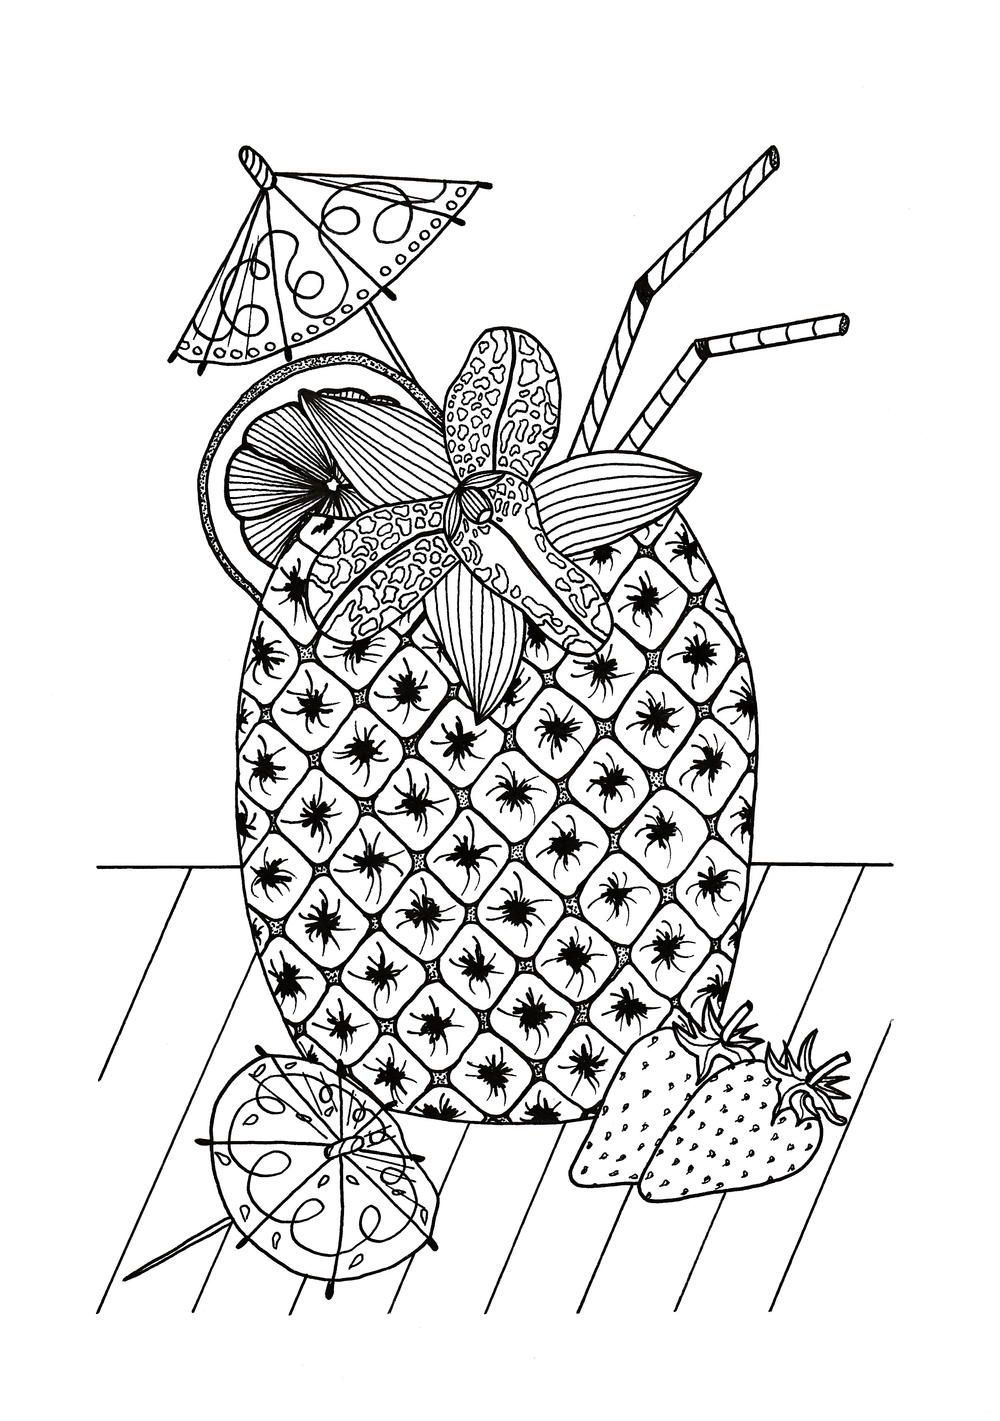 Tropical Island Cocktail Coloring Page Coloringpages Freeprintable Pdf Summer Coloring Pages Beach Coloring Pages Coloring Pages